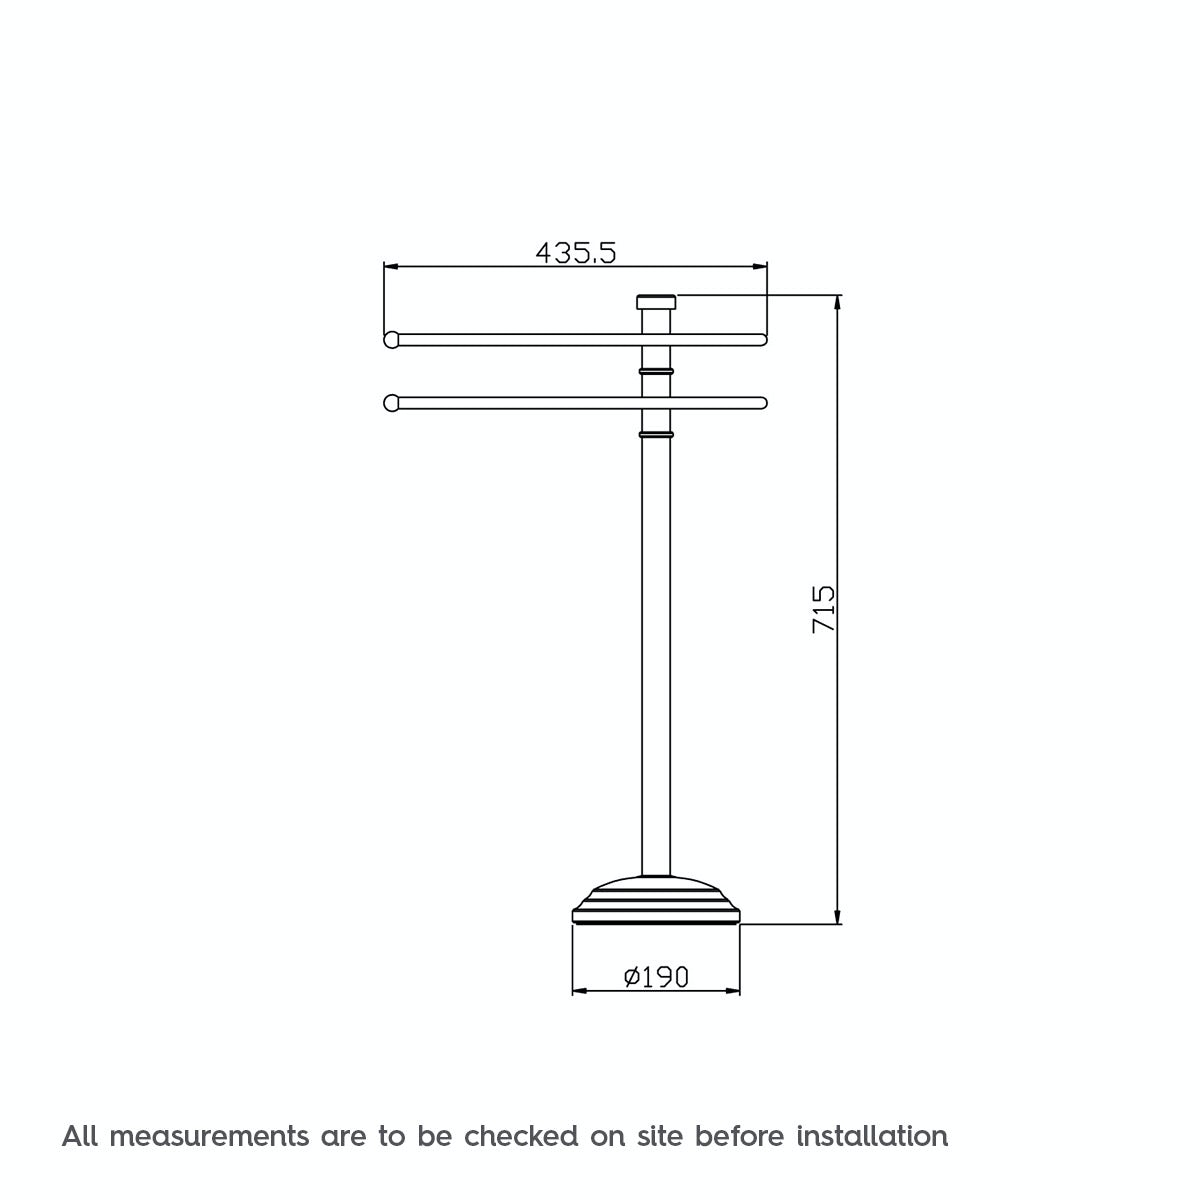 Dimensions for The Bath Co. Traditional freestanding towel rail